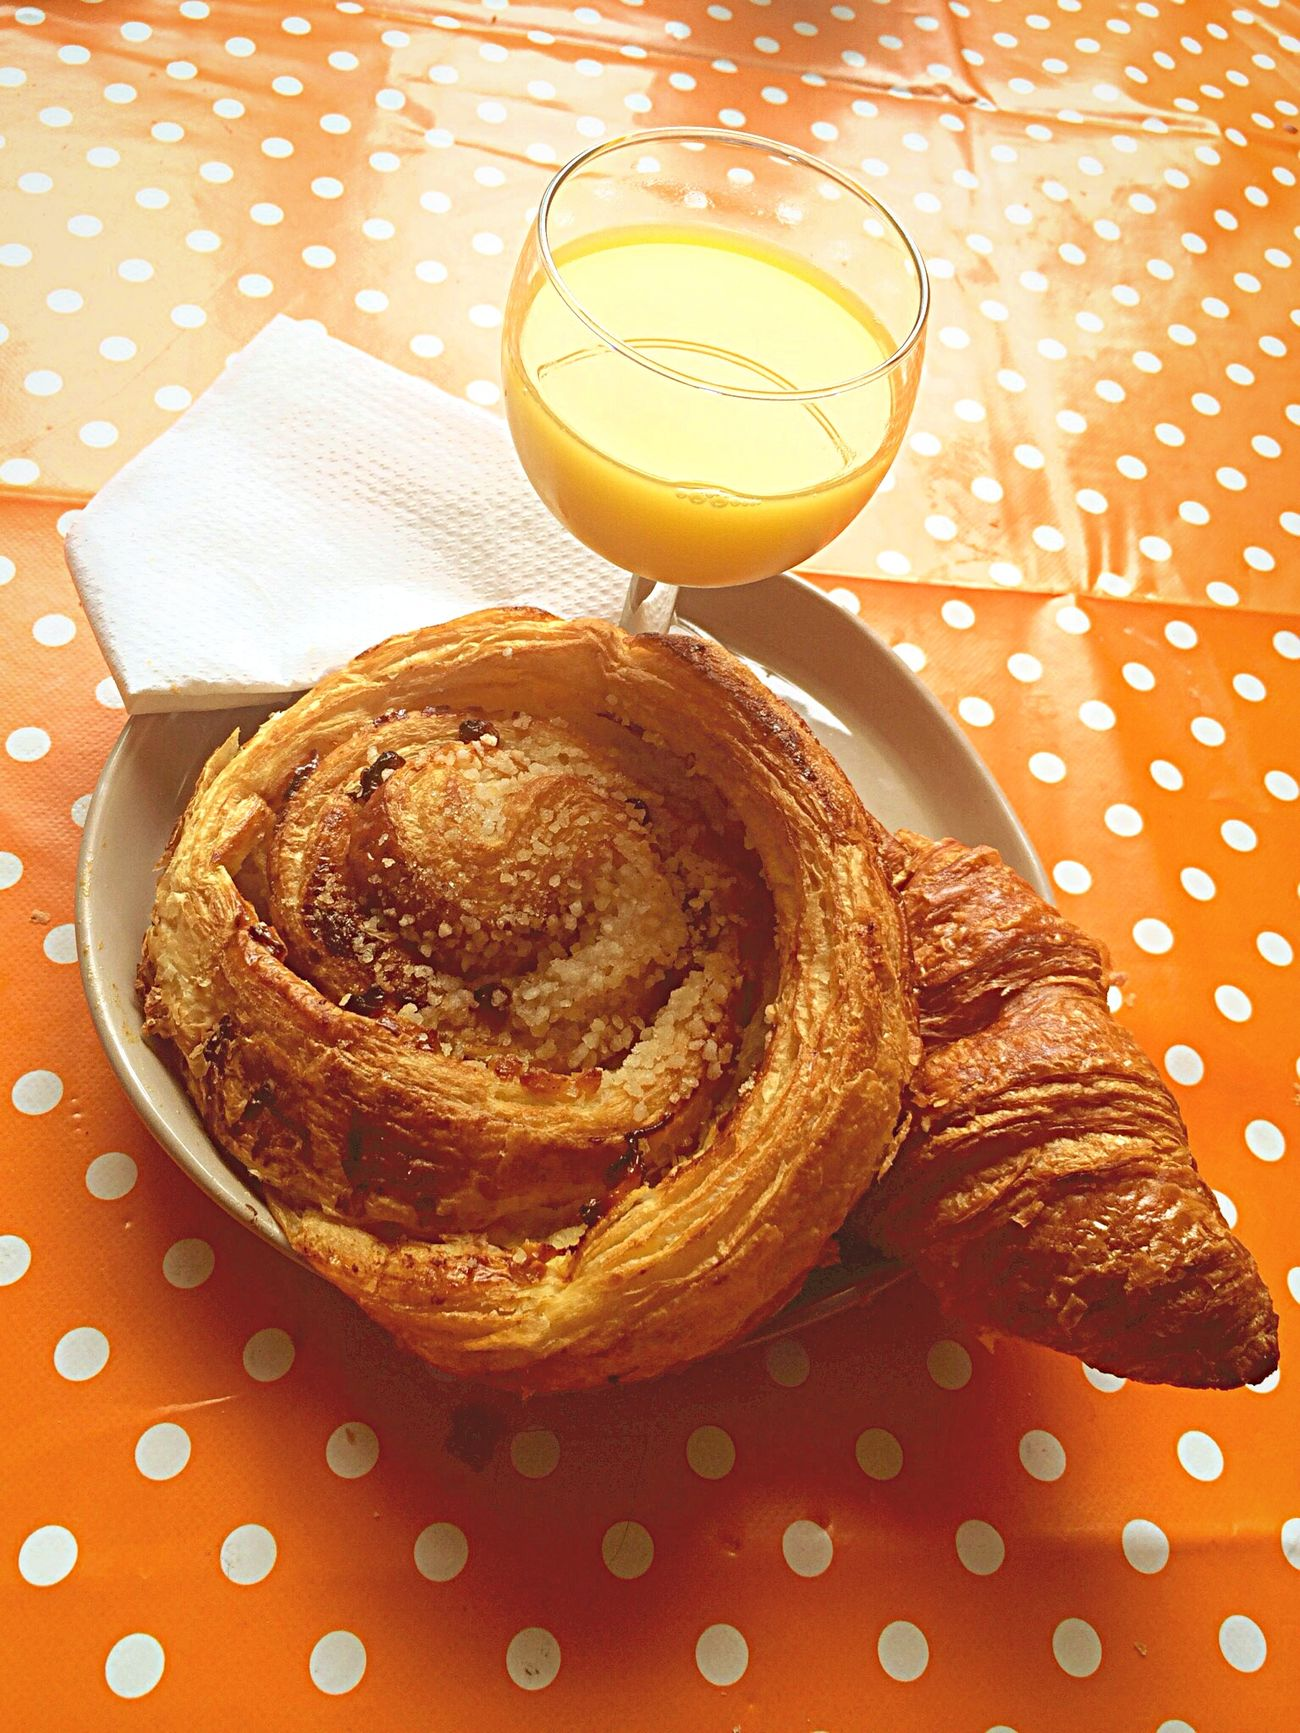 Time For Breakfast  French Croissant and Pain Aux Raisins Orange Juice  Lovely Breakfast Relaxing Relaxing In The Sun